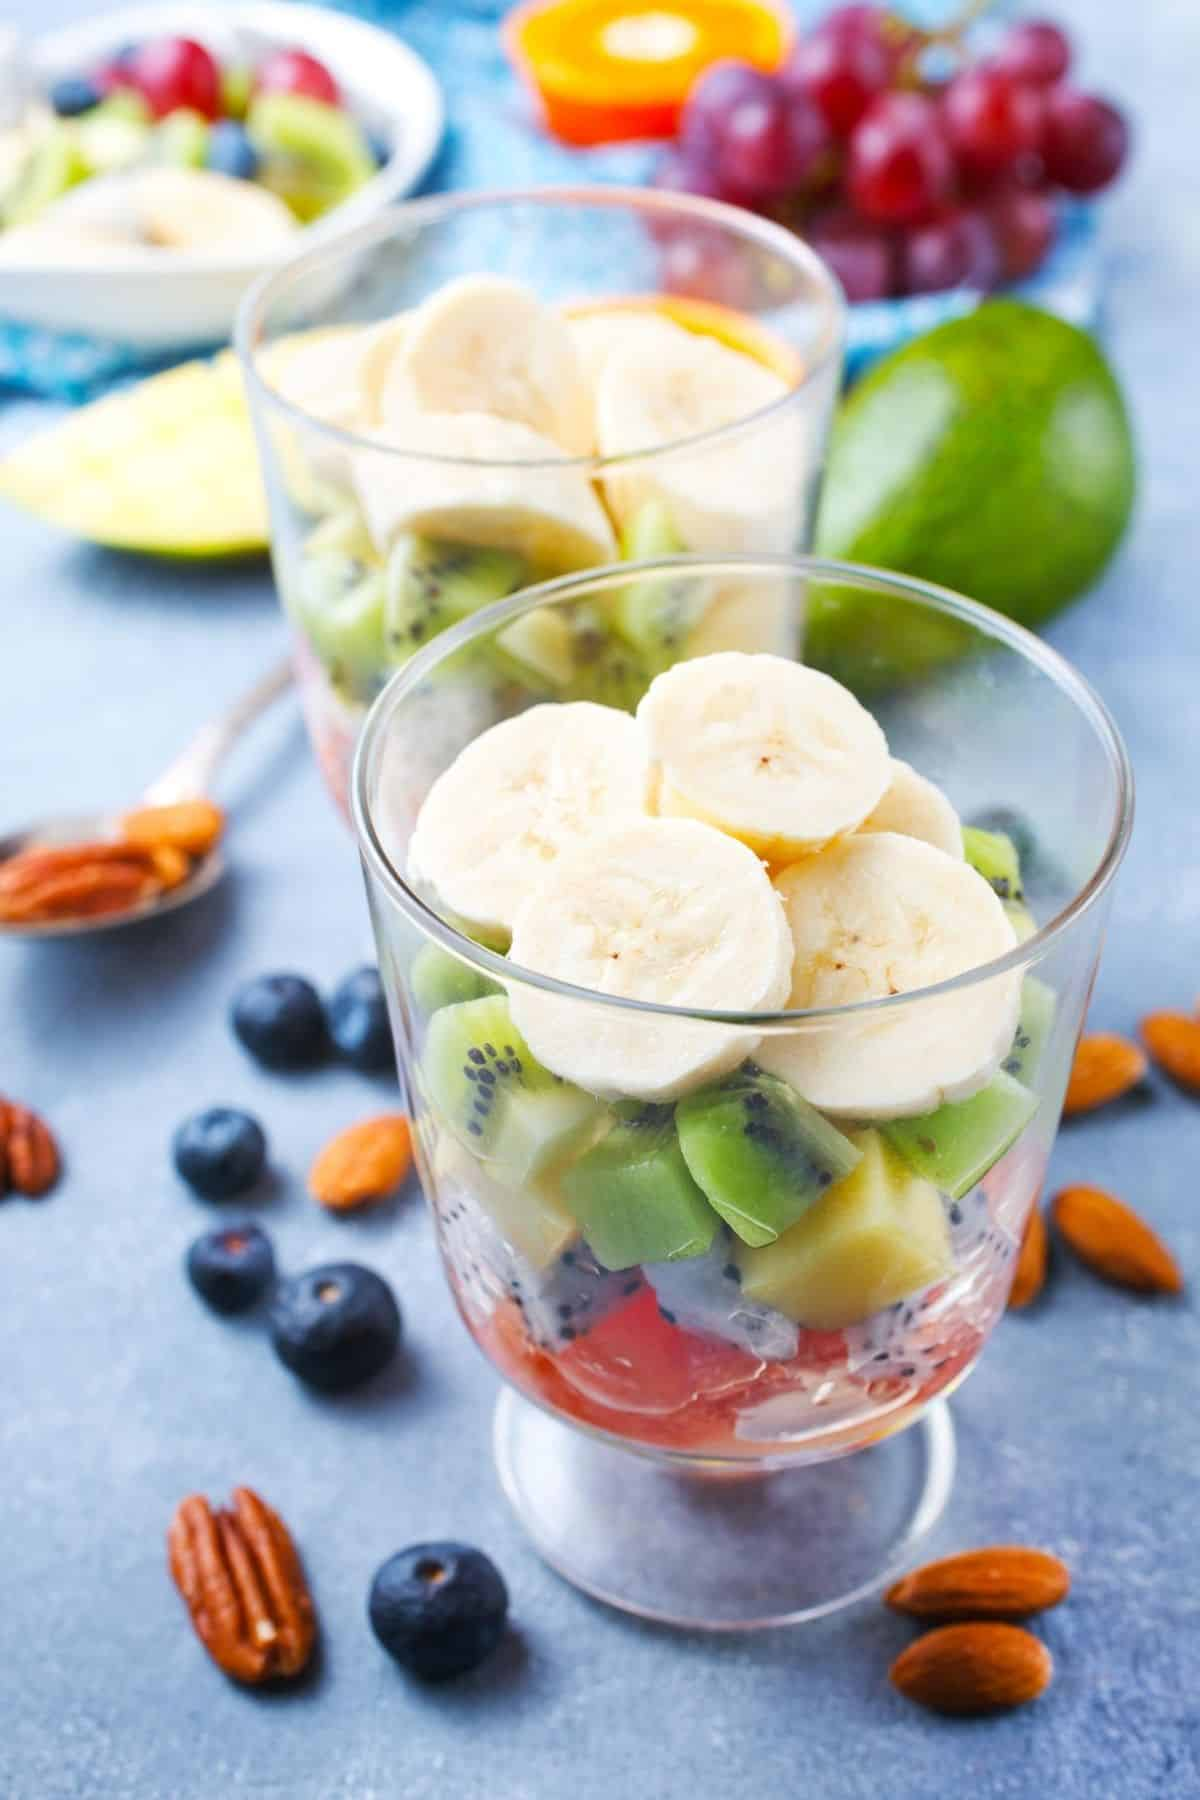 collection of fresh fruits in parfait glasses